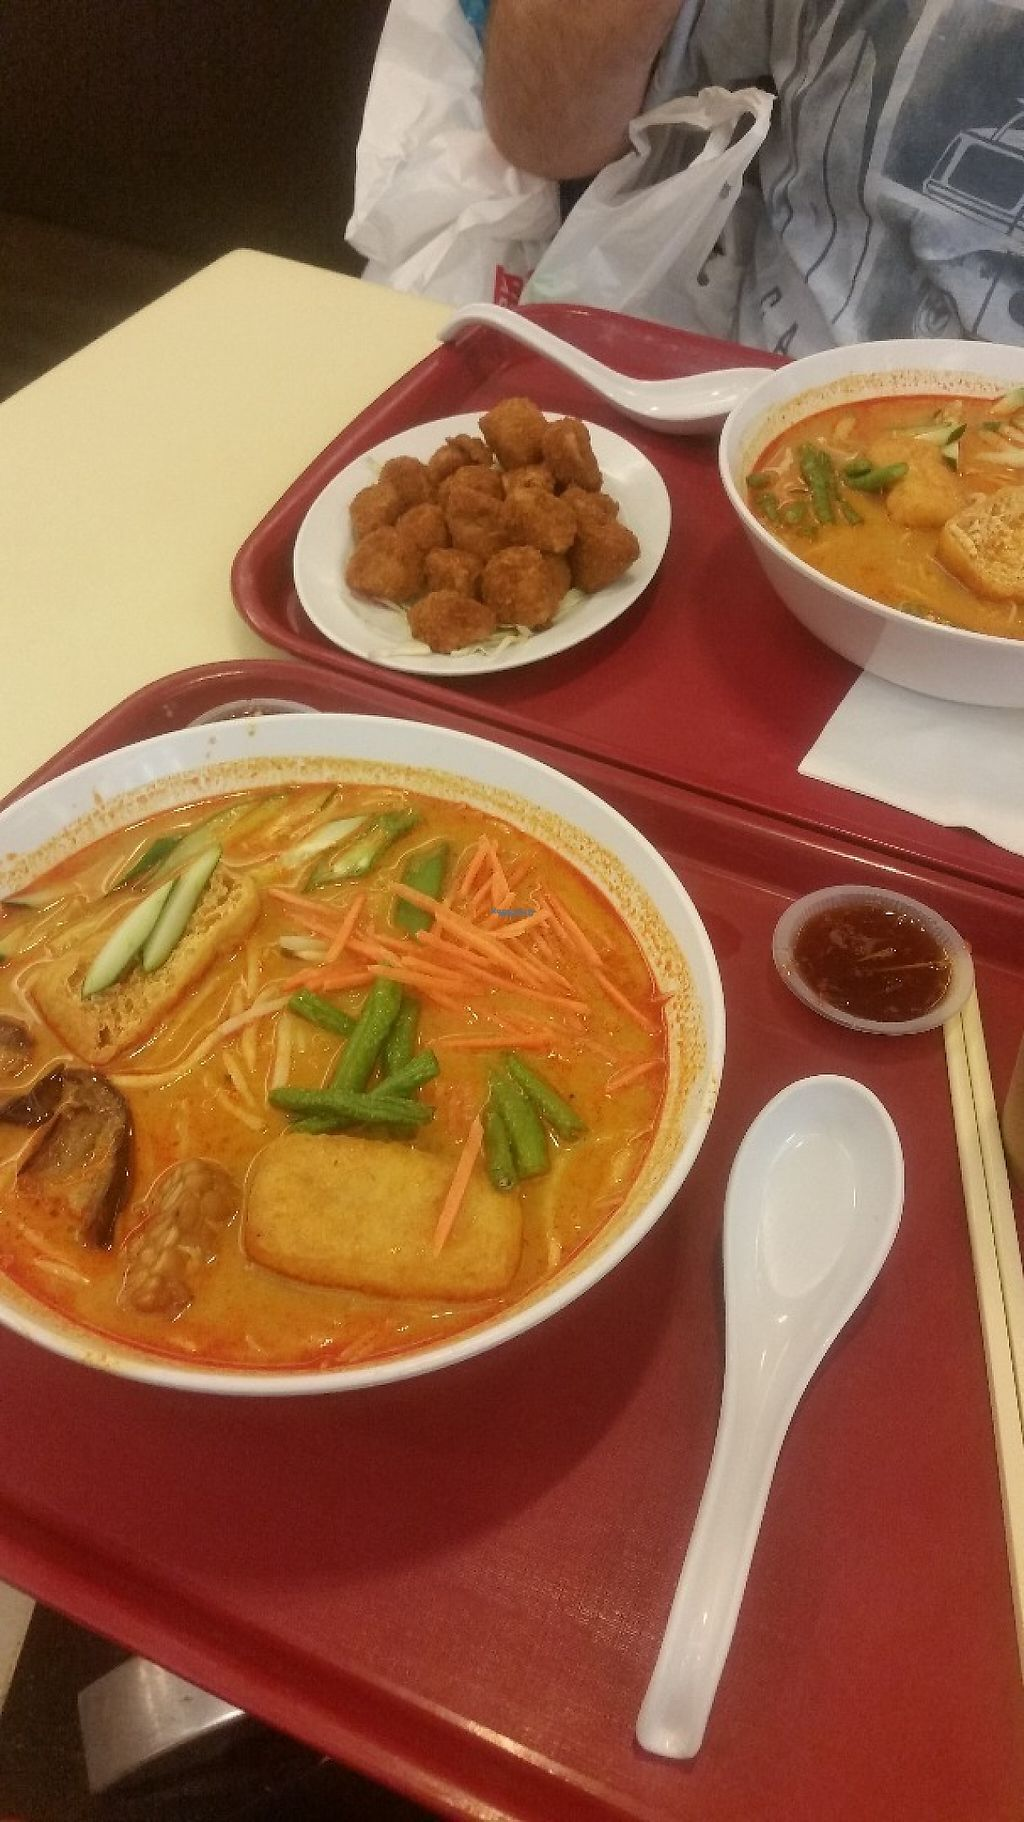 """Photo of Simple Life - KLCC  by <a href=""""/members/profile/Without_Cruelty_Blog"""">Without_Cruelty_Blog</a> <br/>Veggie Laksa and popcorn 'chicken' :)  <br/> November 13, 2016  - <a href='/contact/abuse/image/36004/189646'>Report</a>"""